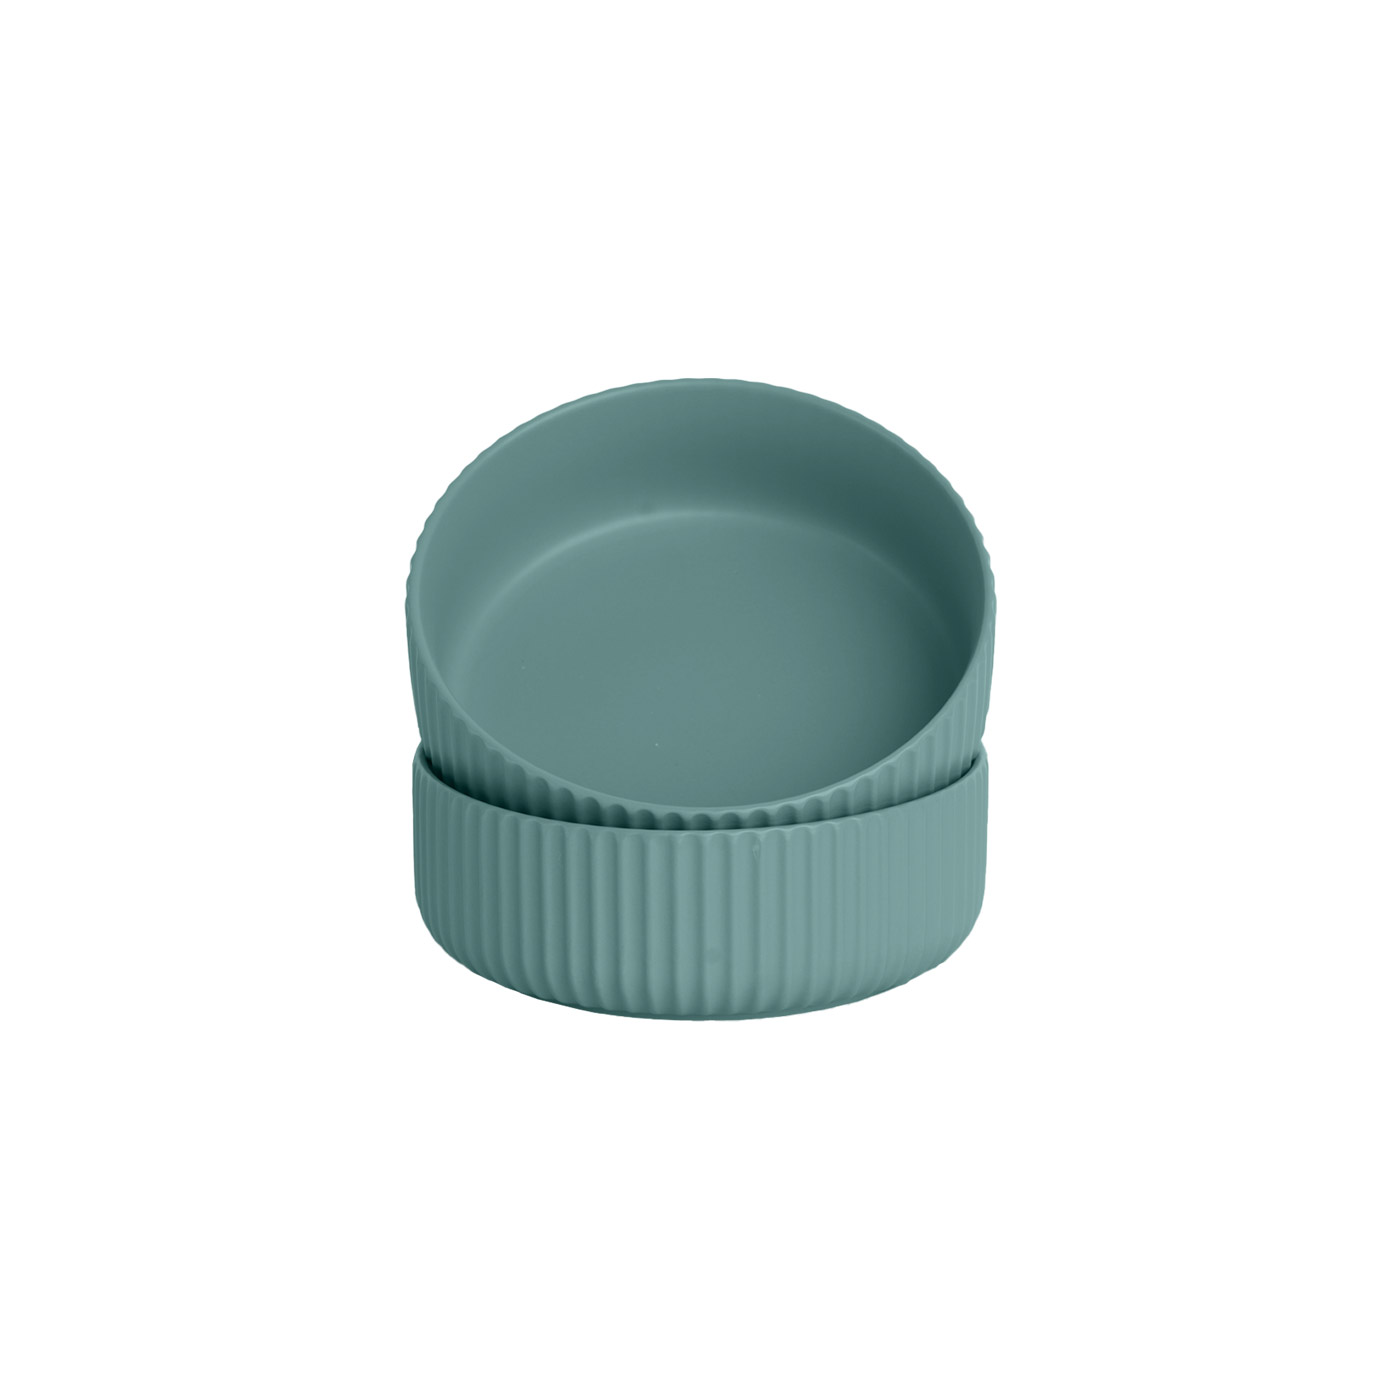 Ribbet Green Small Bowl, Set of Two